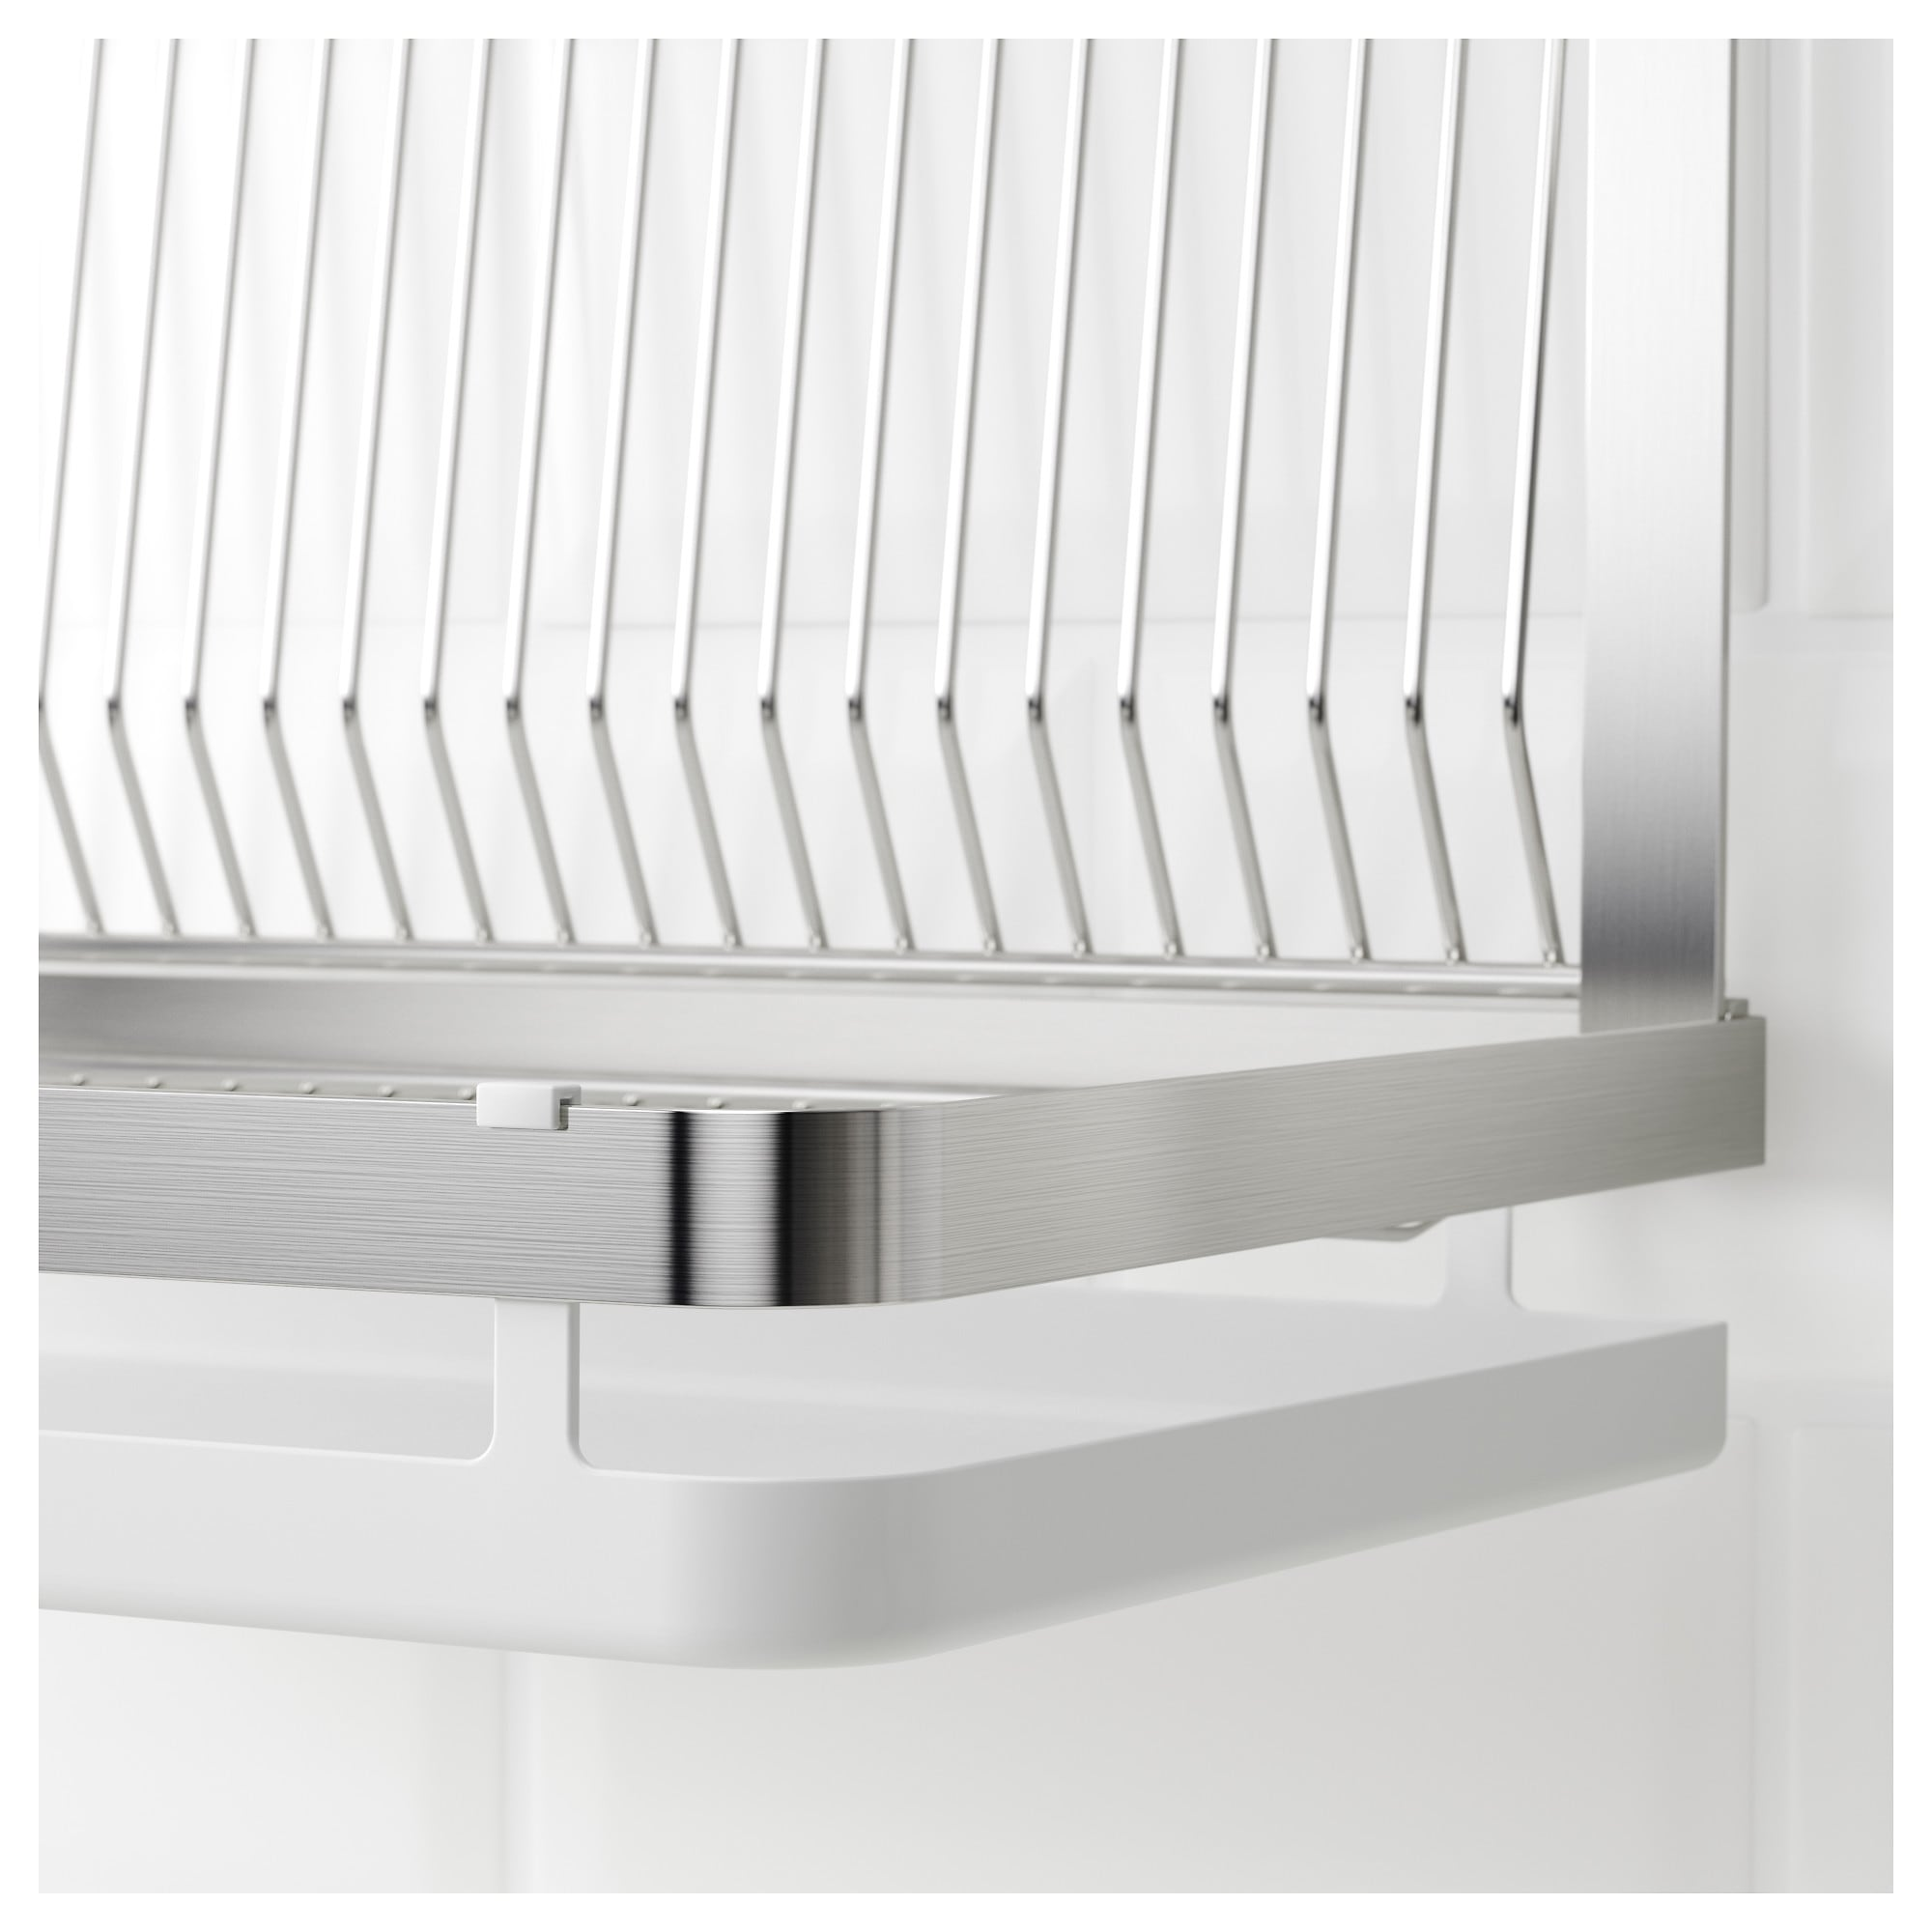 Appealing Ikea Wall Mounted Dish Drying Rack Images - Best Image ...